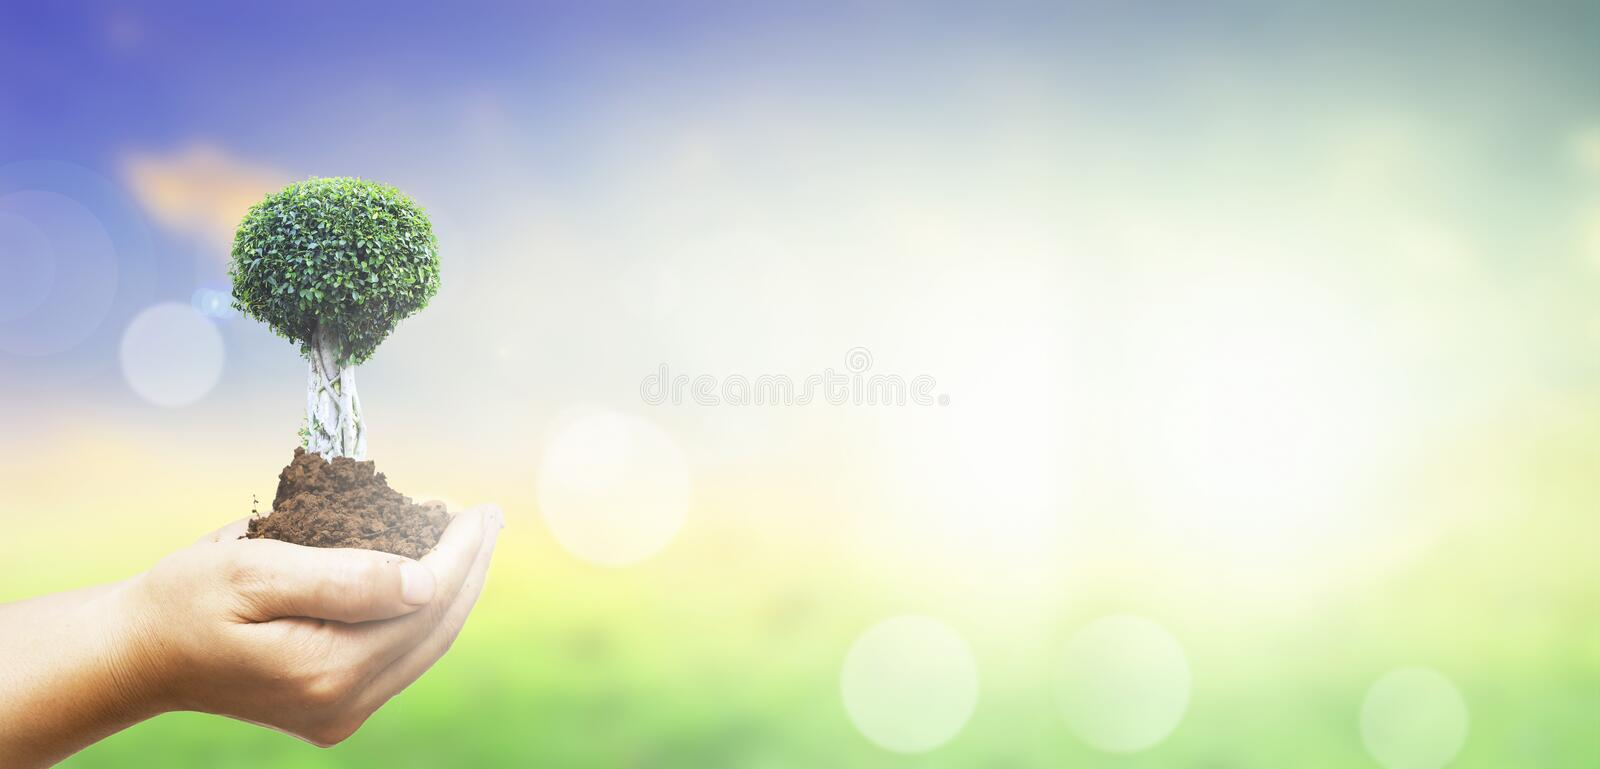 World environment day concept: Human hands holding big tree over green forest background royalty free stock photo